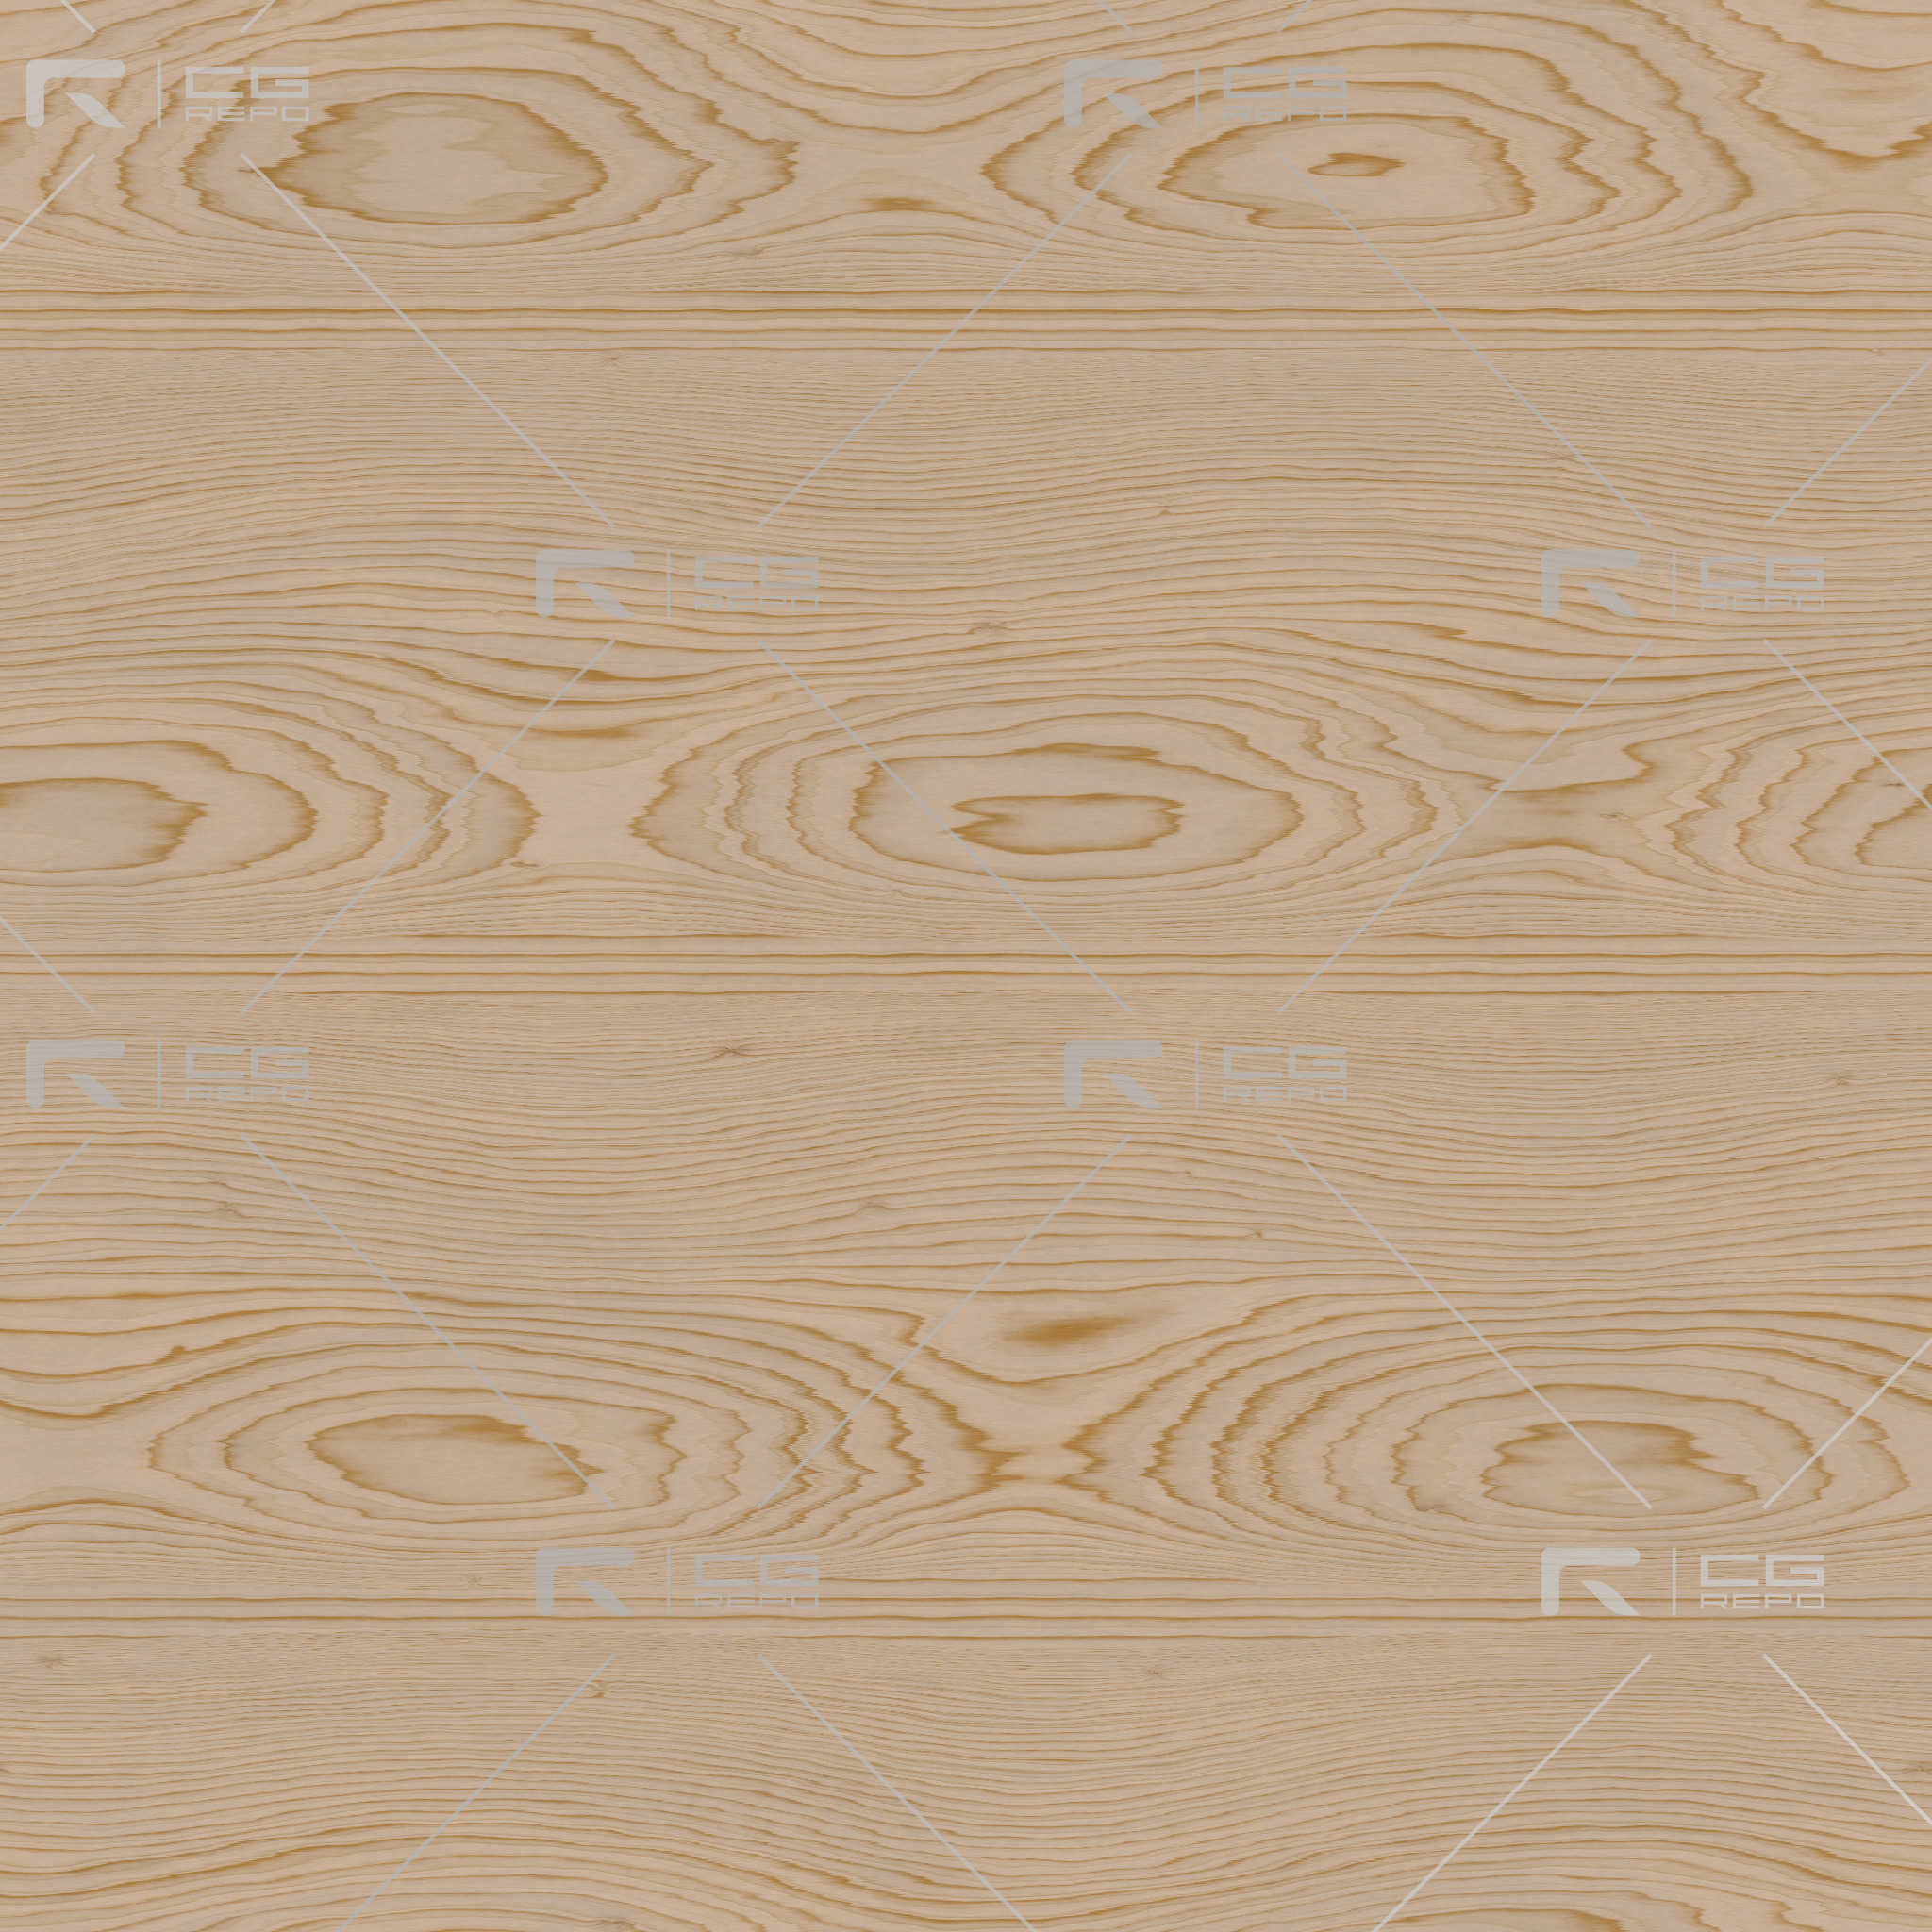 Maple - Flat Figured Wood BaseColor Texture